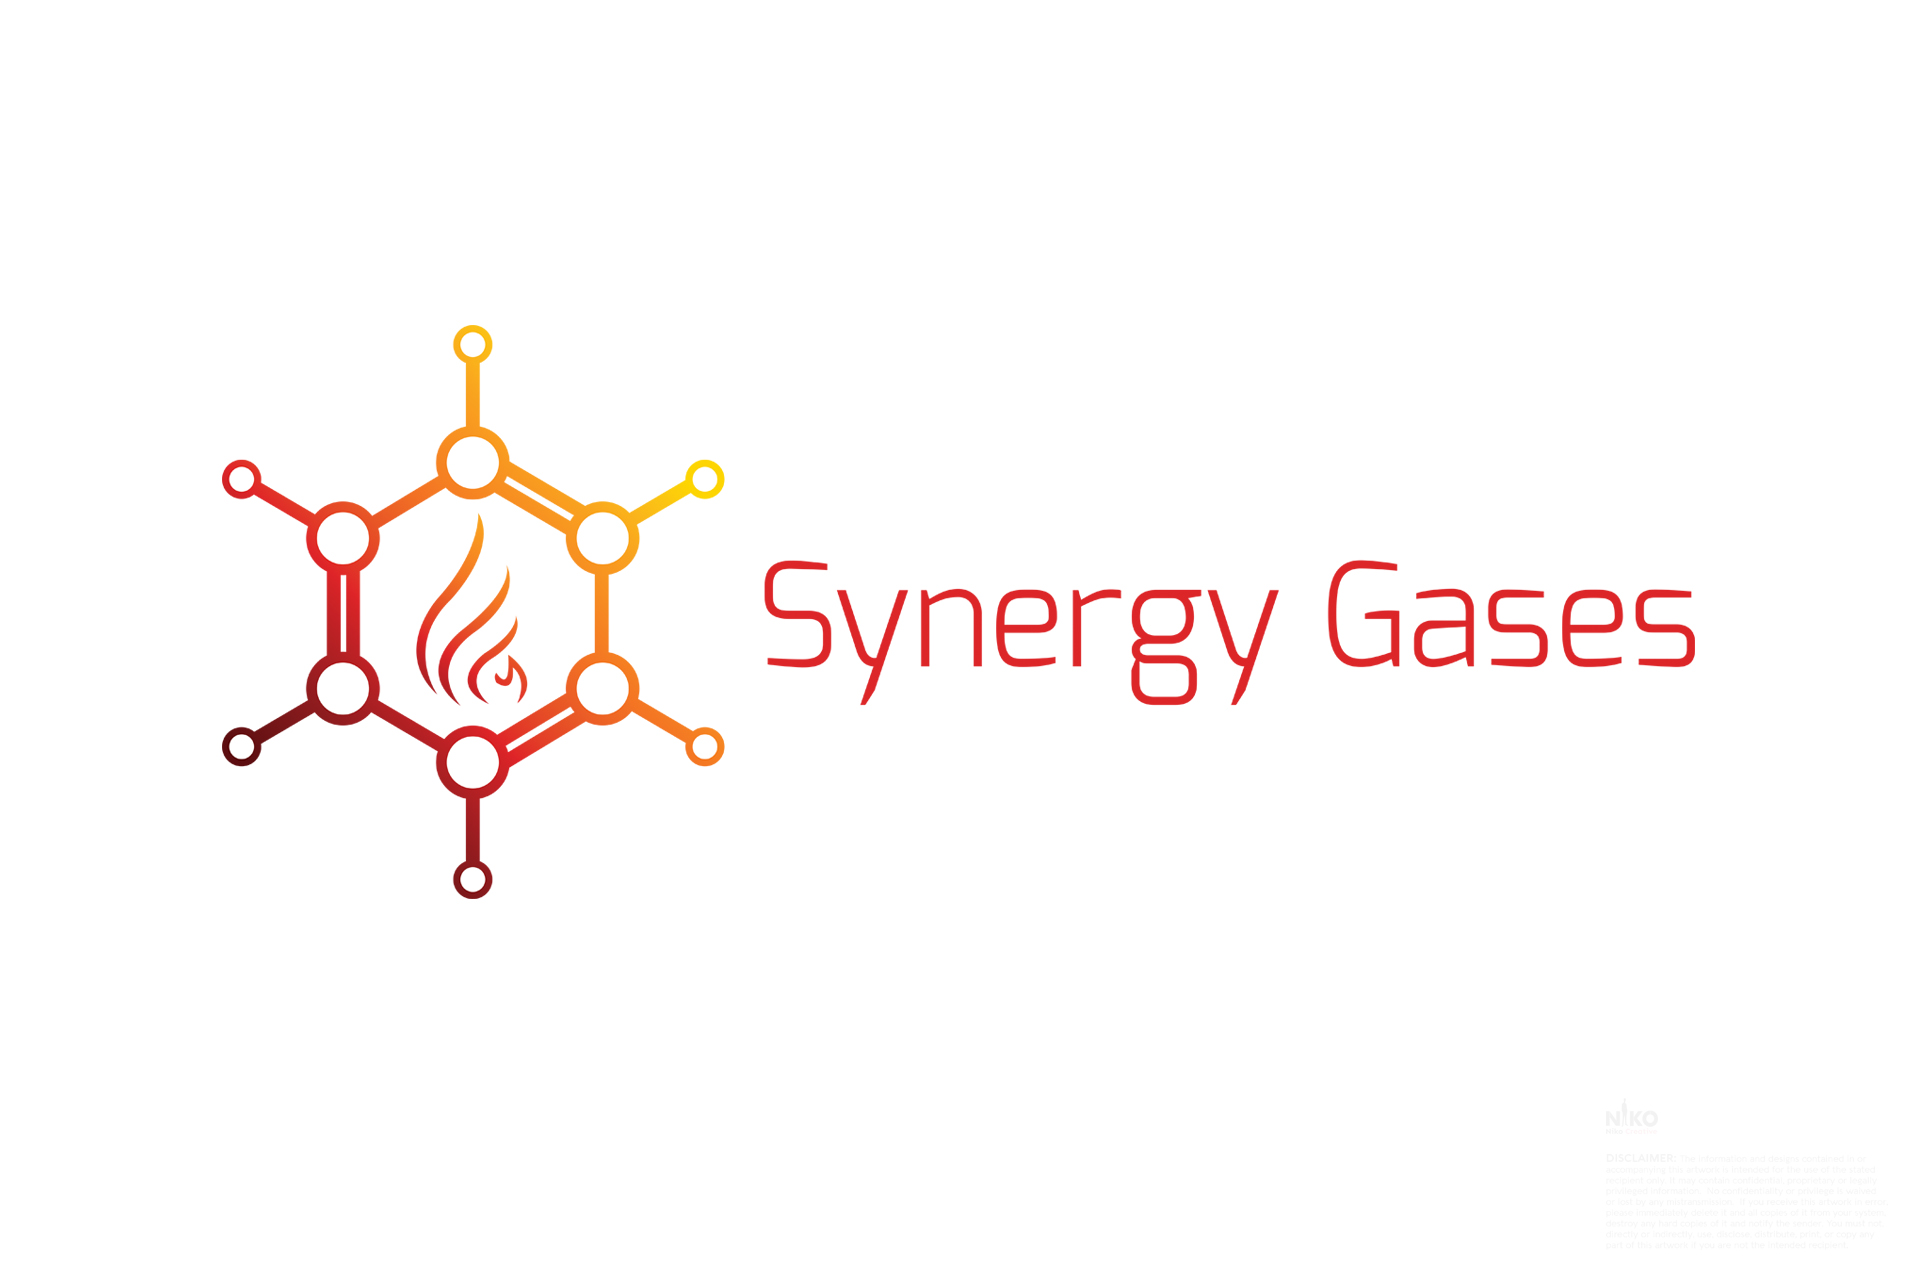 Day 4 Synergy Gases